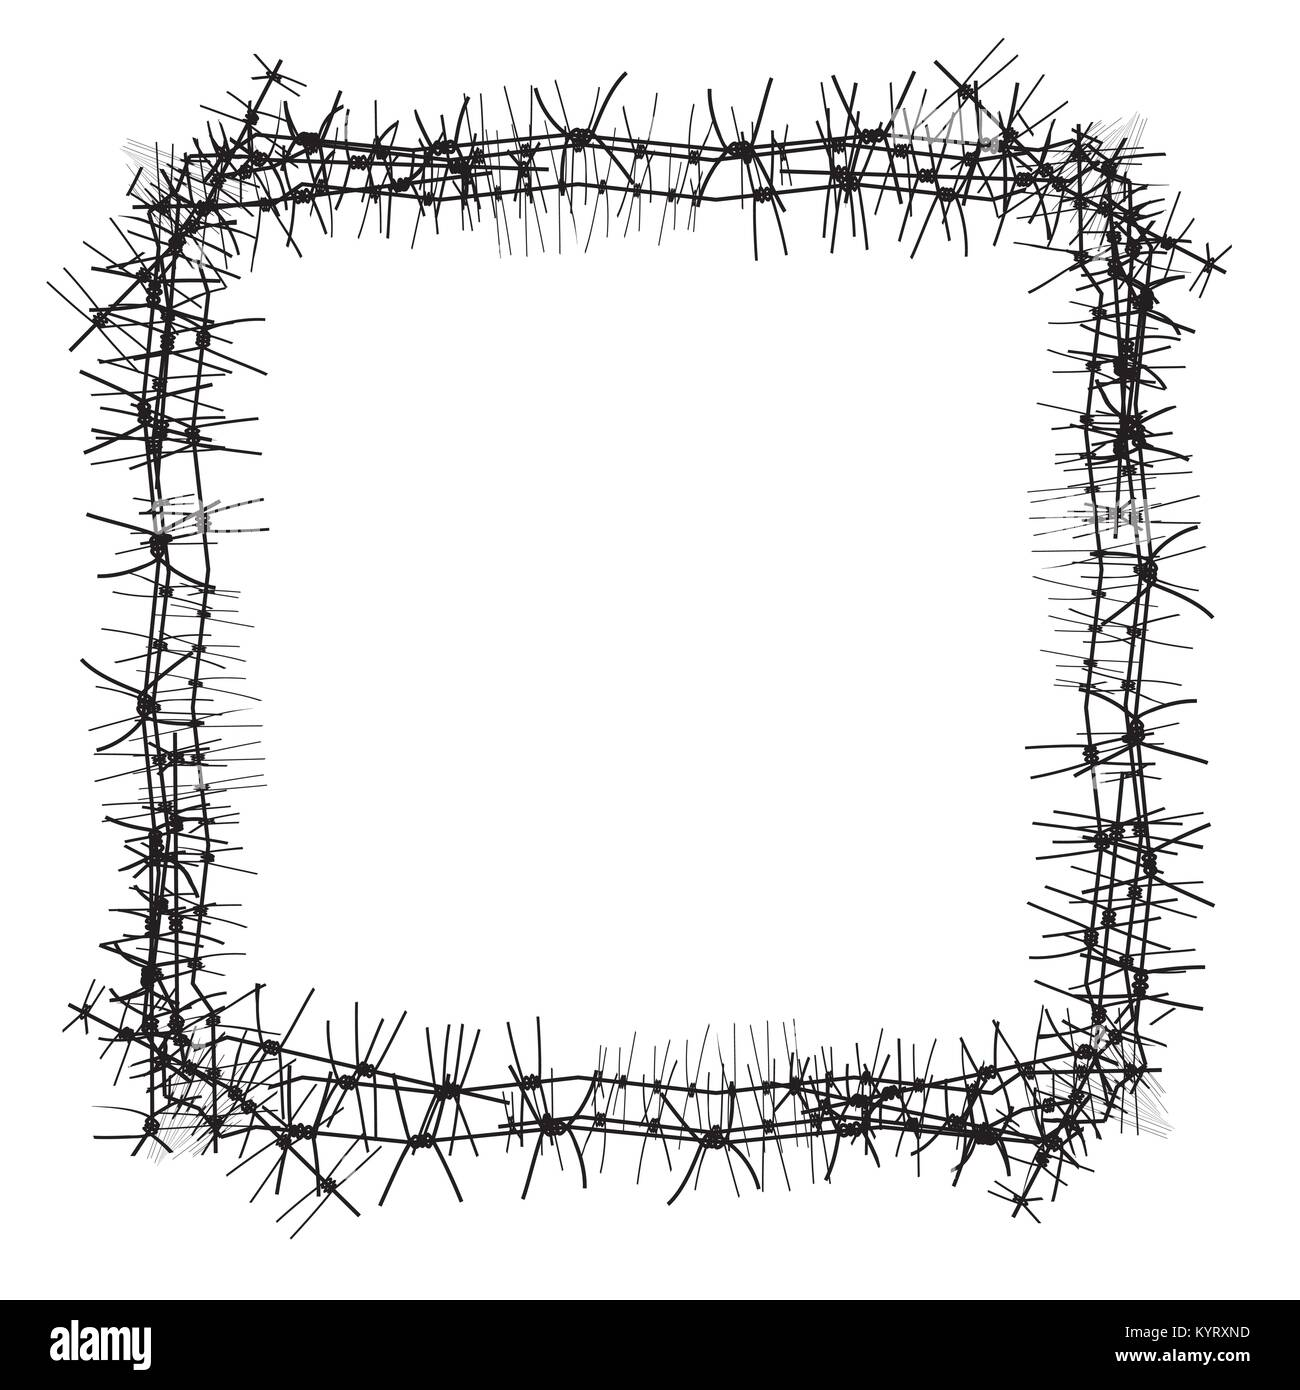 Barbed Wire Fence In Military Stock Photos & Barbed Wire Fence In ...